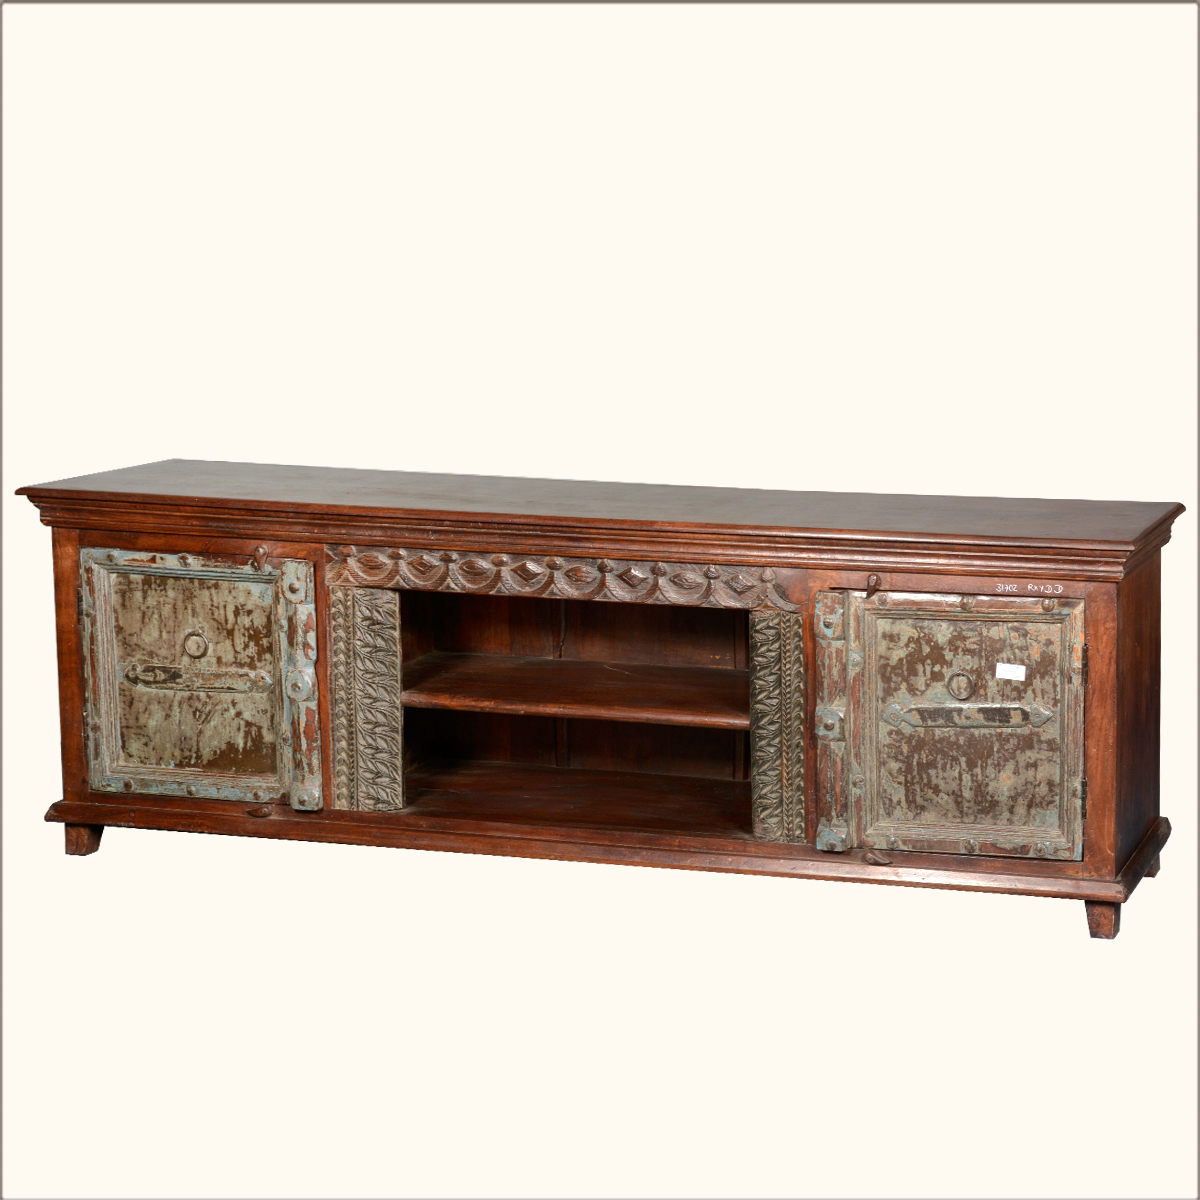 Antique Style Reclaimed Wood Media Console Rustic Tv Stand